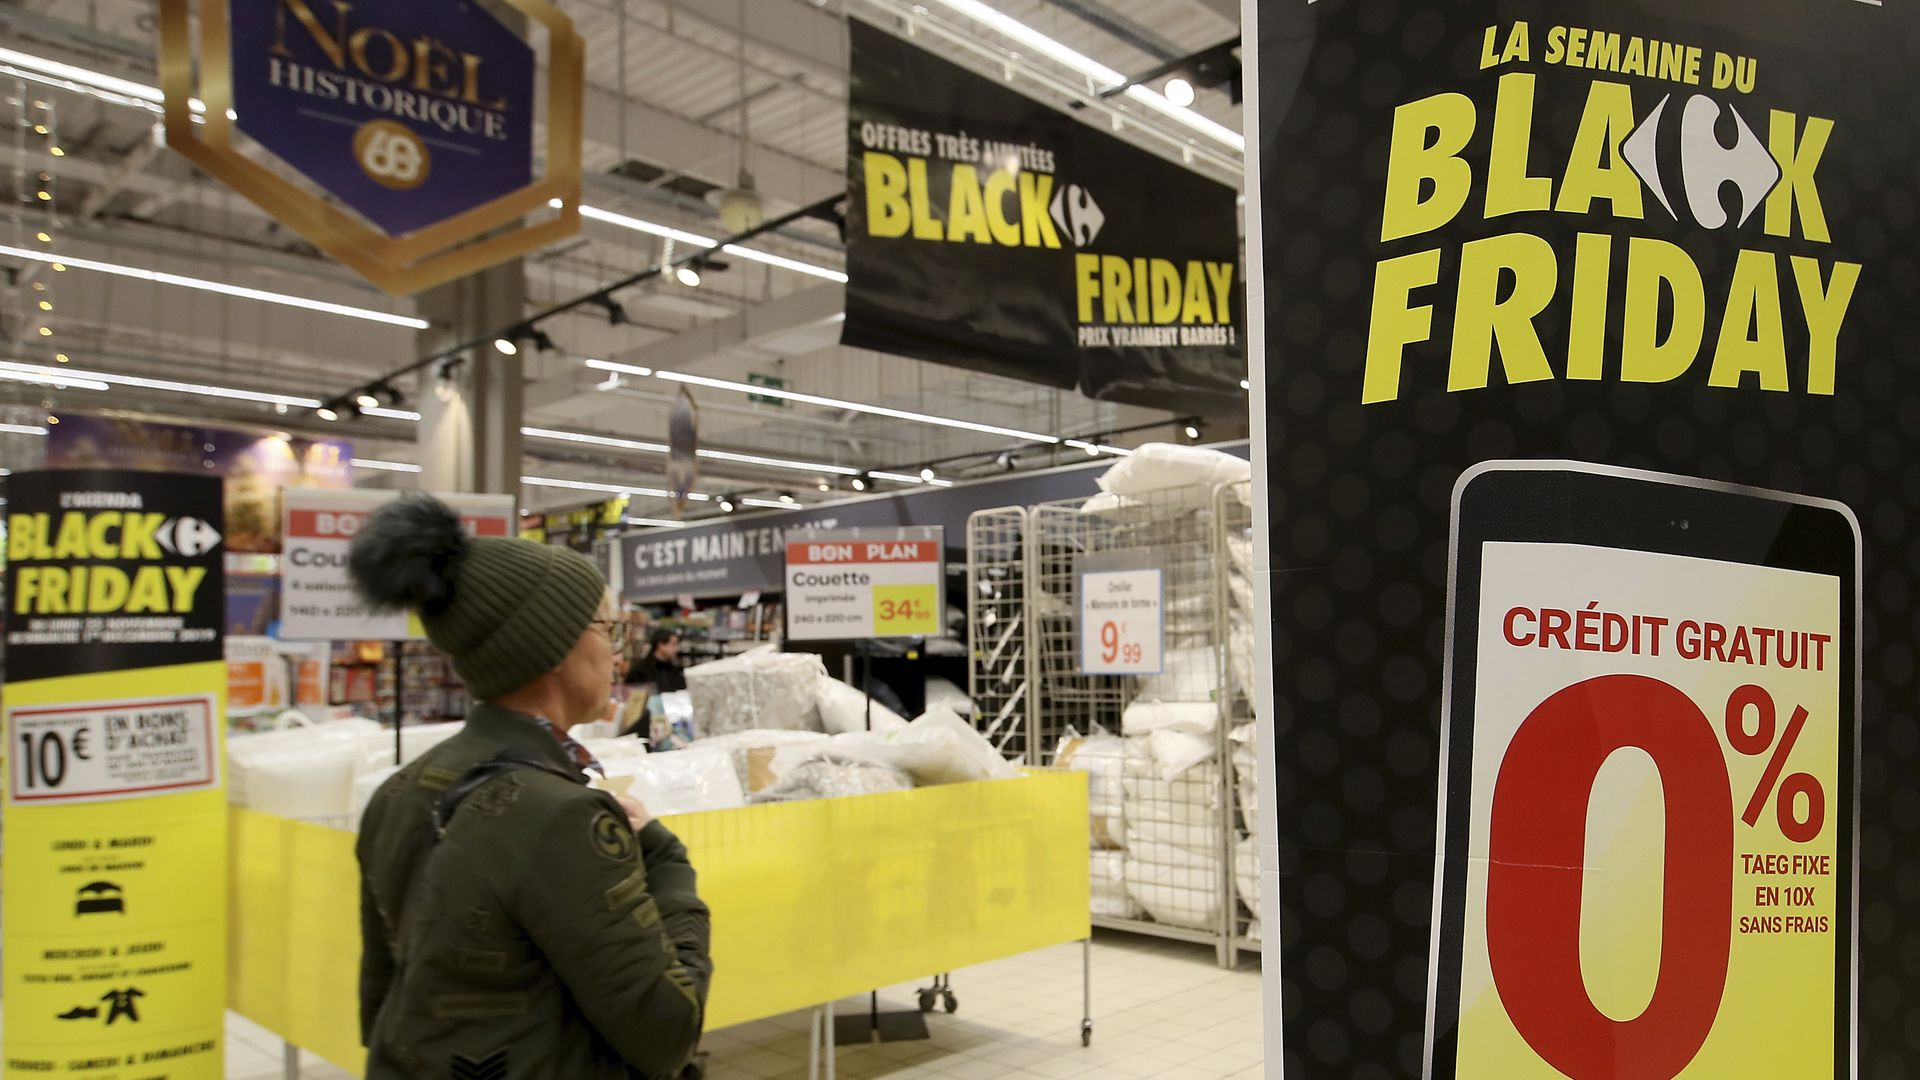 A shopper in a French store advertising Black Friday.